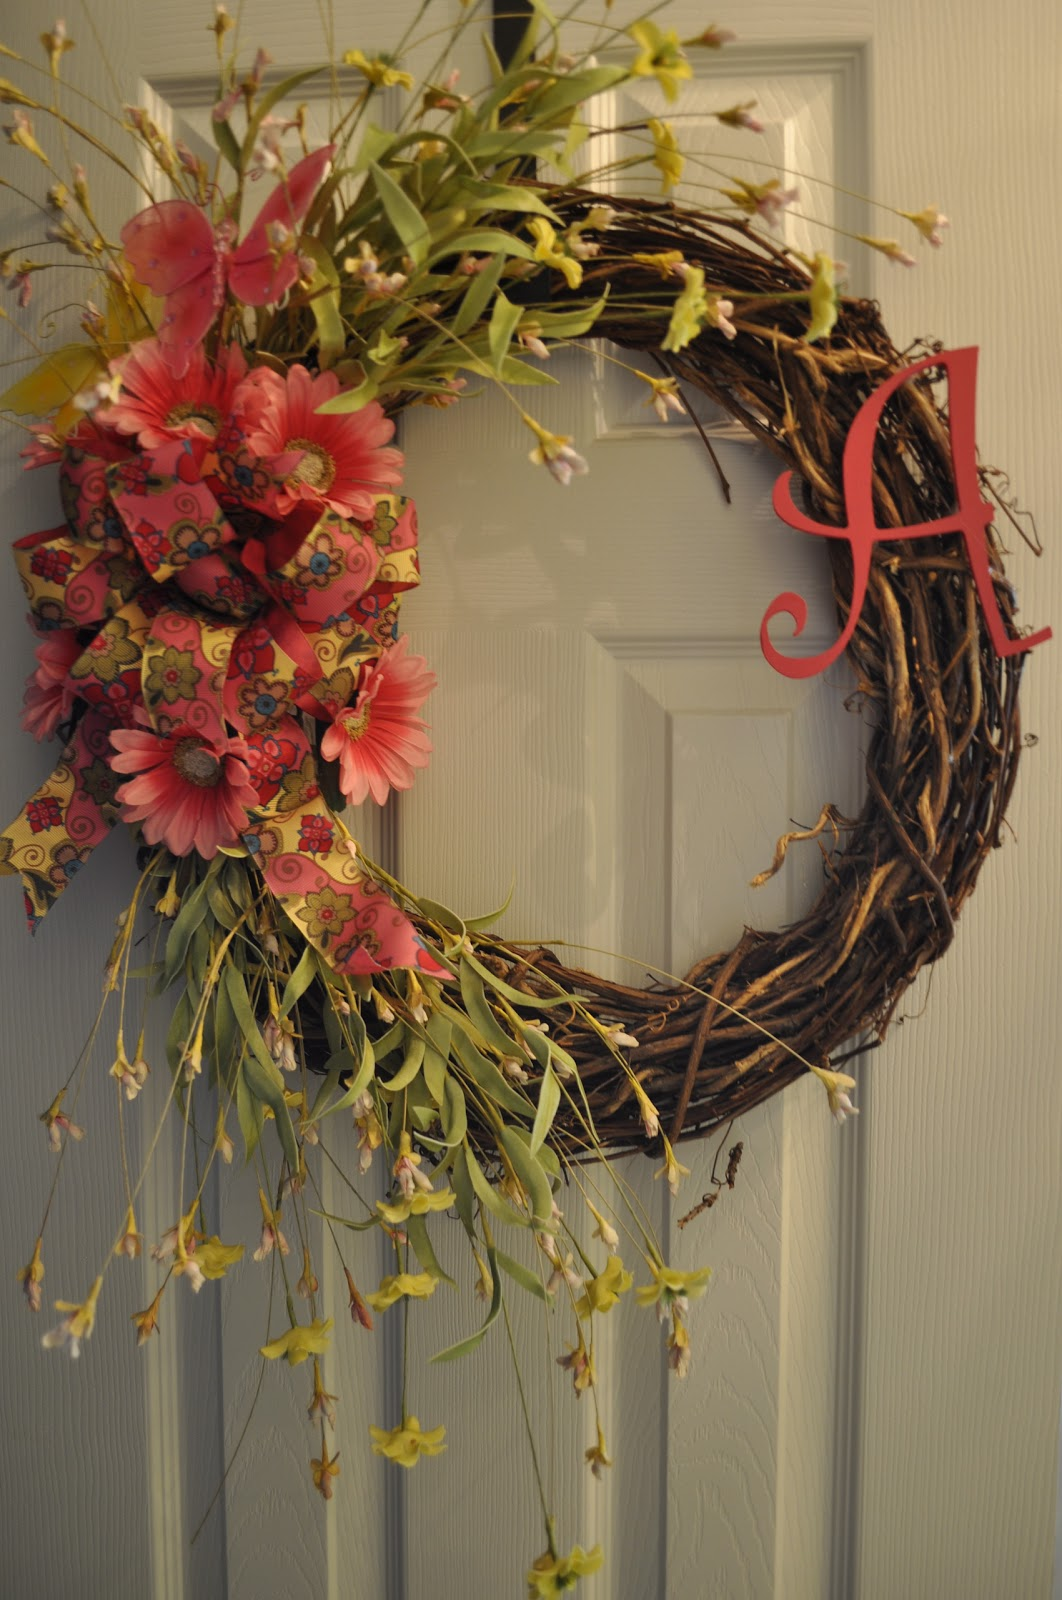 The teal egg grape vine wreaths How to decorate a wreath